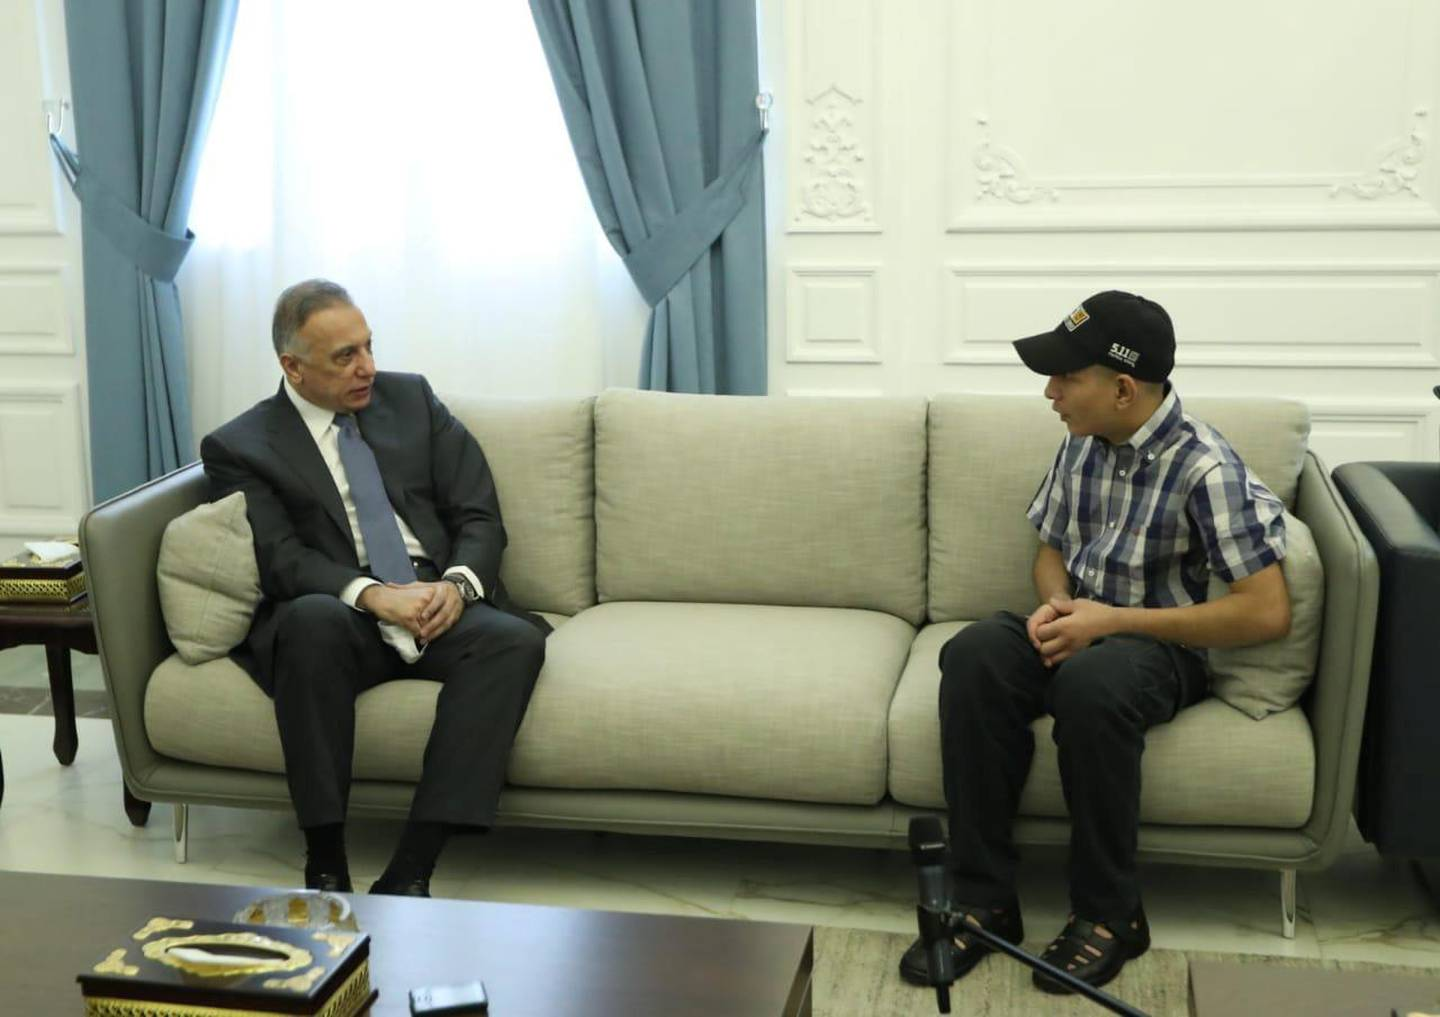 Iraqi Prime Minister Mustafa al-Kadhimi meets with Iraqi teenager Hamid Saeed, who was mistreated by members of security forces, after he was released from jail in Baghdad, Iraq August 3, 2020. Picture taken August 3, 2020.  Iraqi Prime Minister Media Office/Handout via REUTERS ATTENTION EDITORS - THIS IMAGE WAS PROVIDED BY A THIRD PARTY.